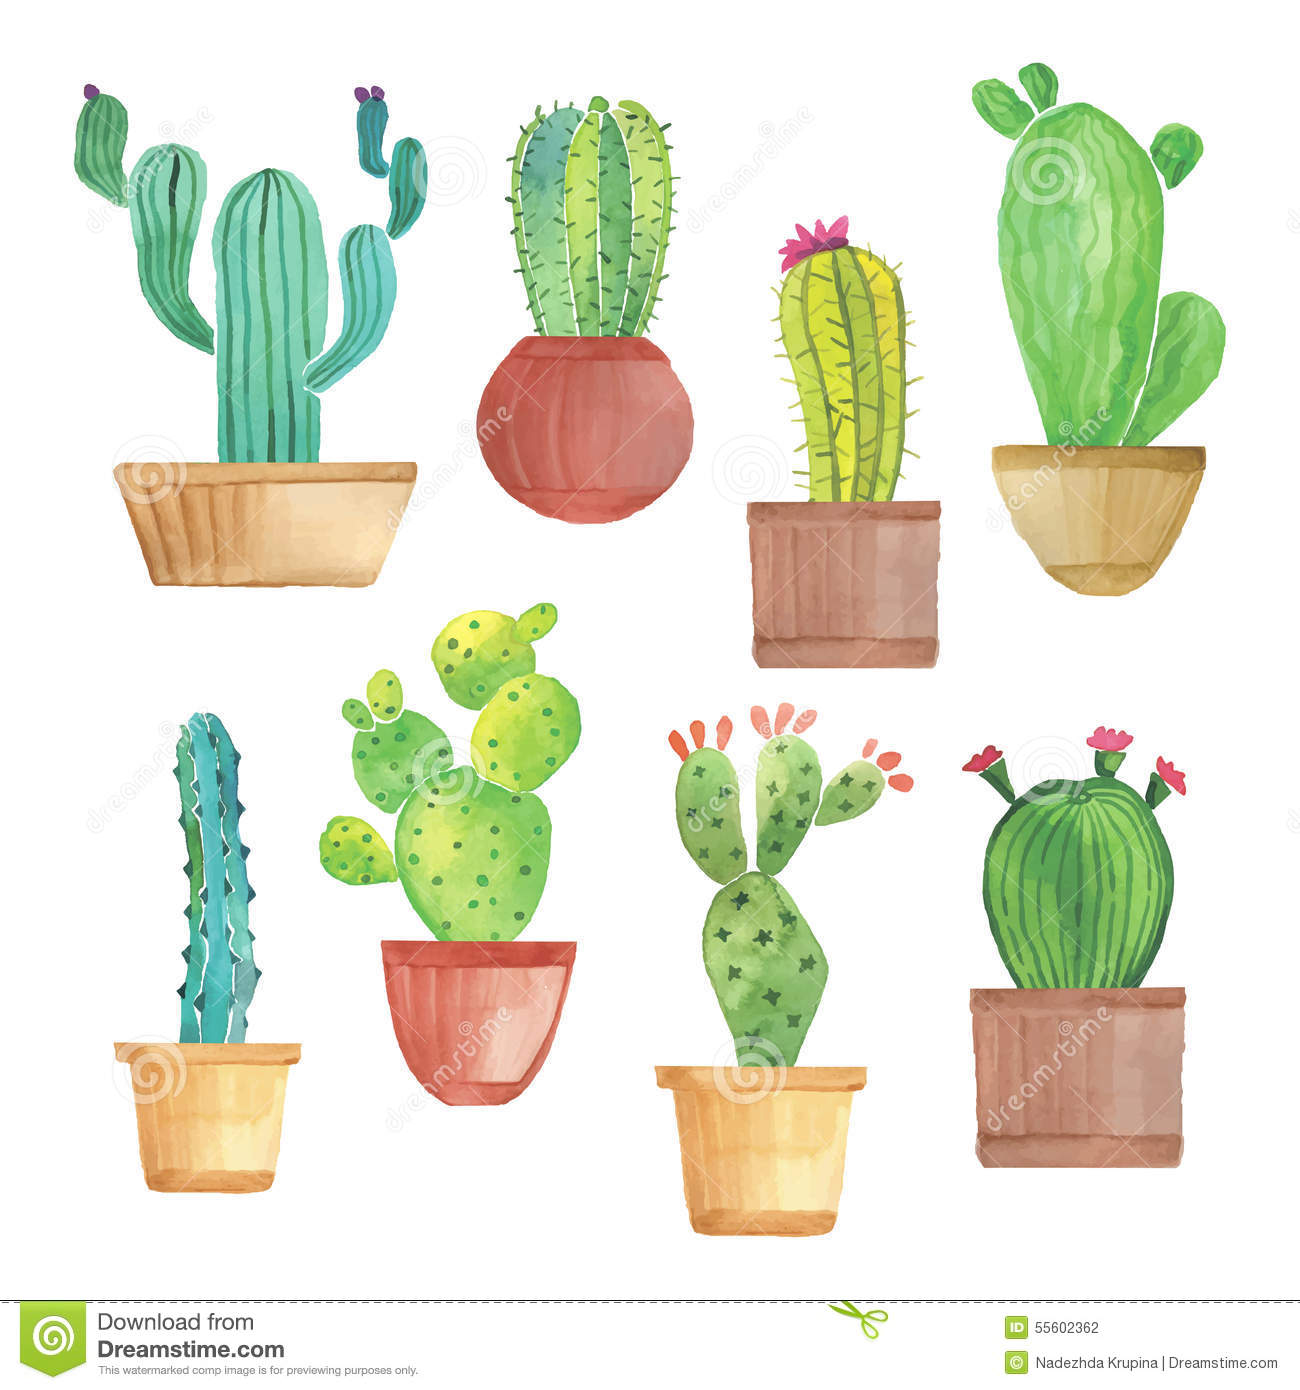 Watercolor Cactus Set Stock Vector - Image: 55602362